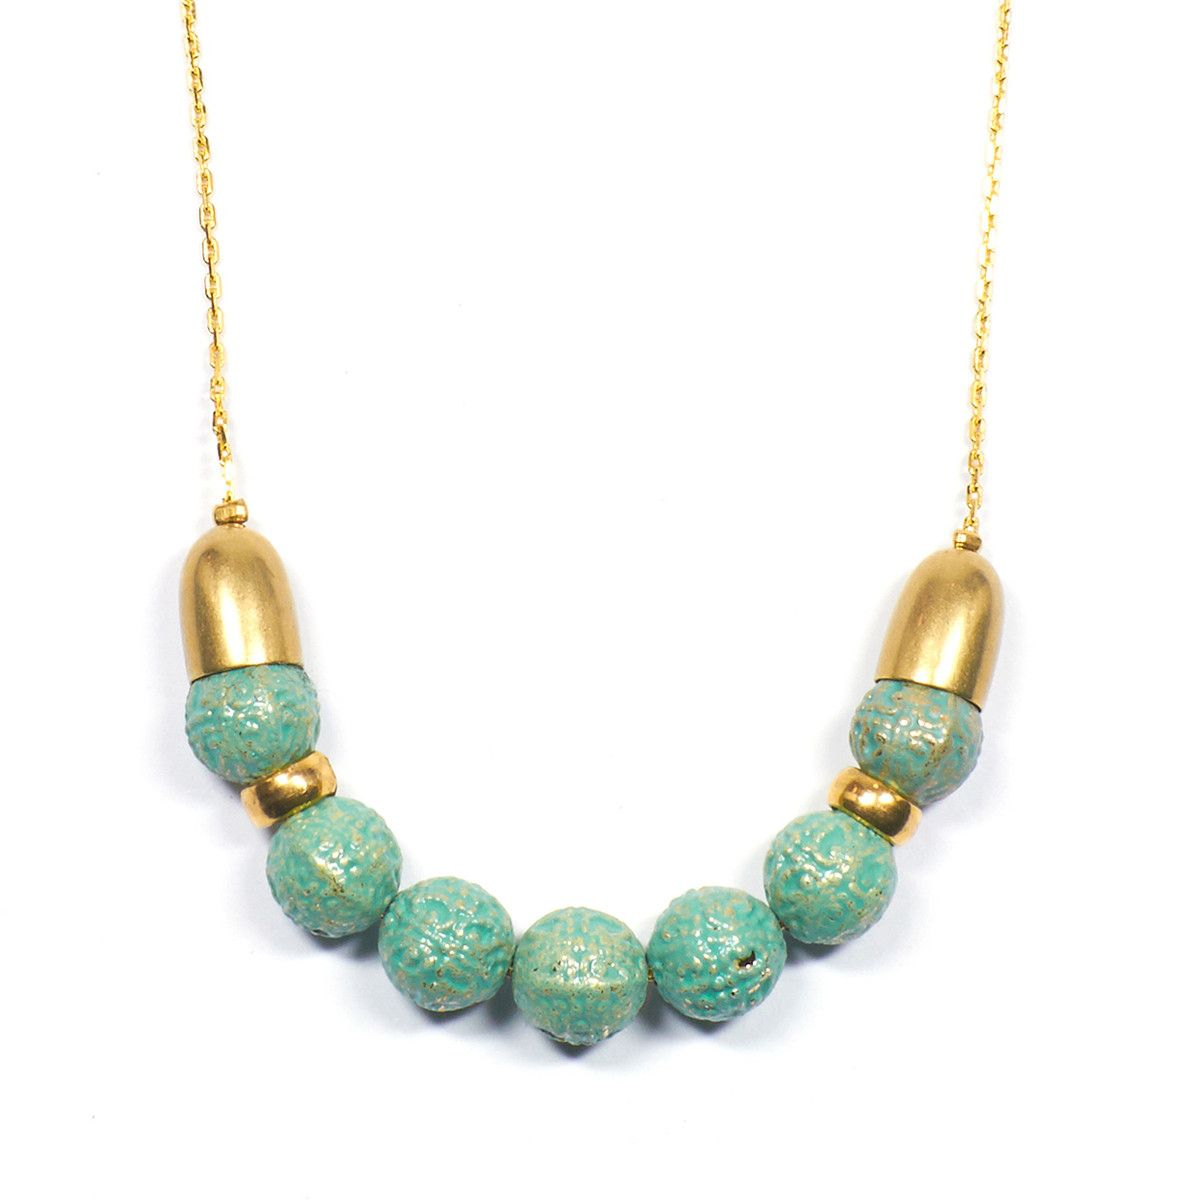 Kora Necklace Turquoise by Victoria Bekerman